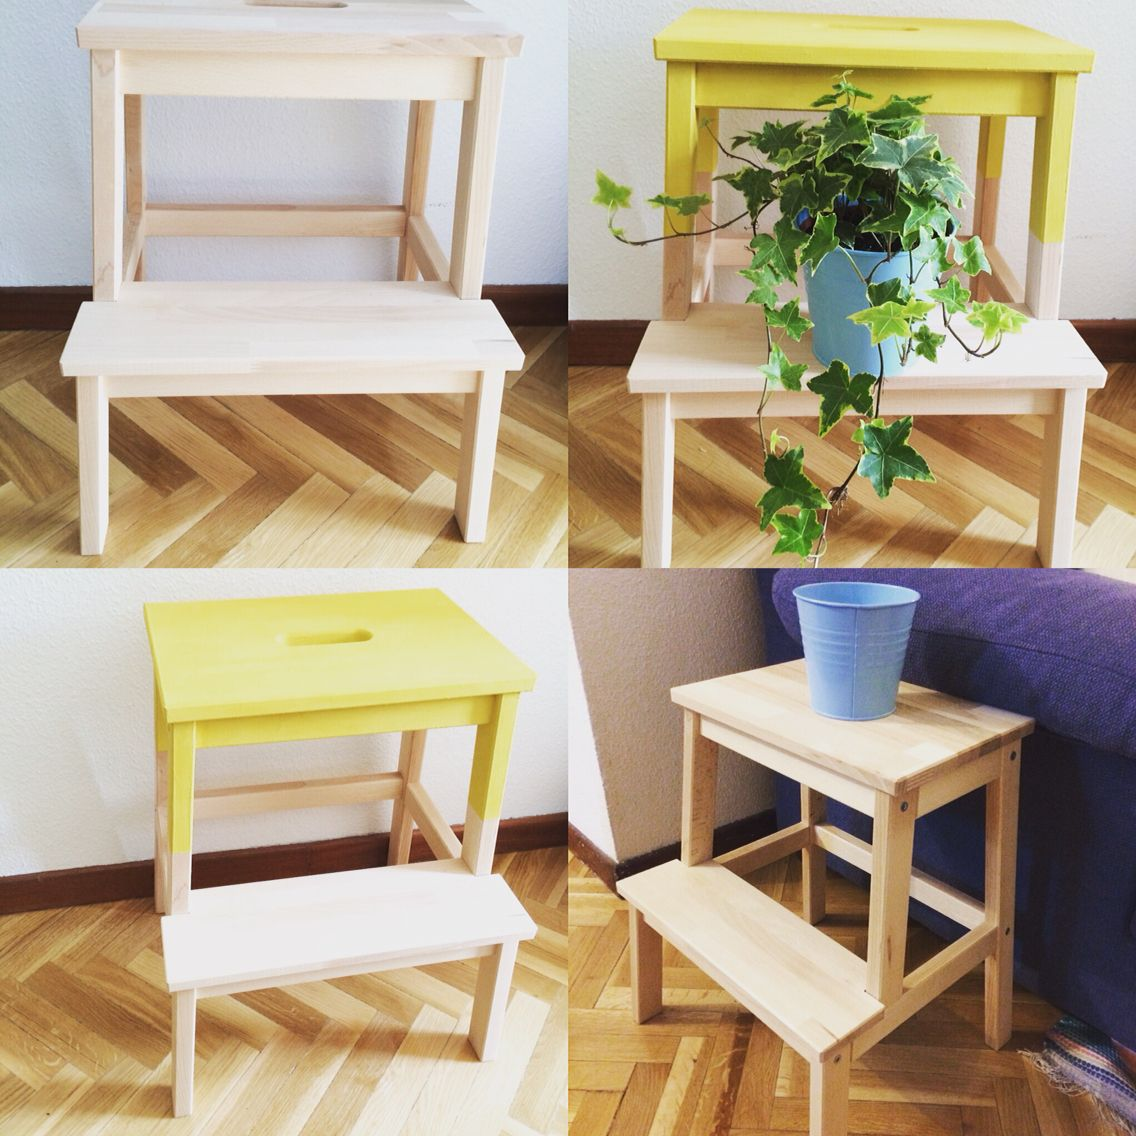 Ikea Bekvam step stool hack with Annie Sloan chalk paint in English Yellow & Ikea Bekvam step stool hack with Annie Sloan chalk paint in ... islam-shia.org